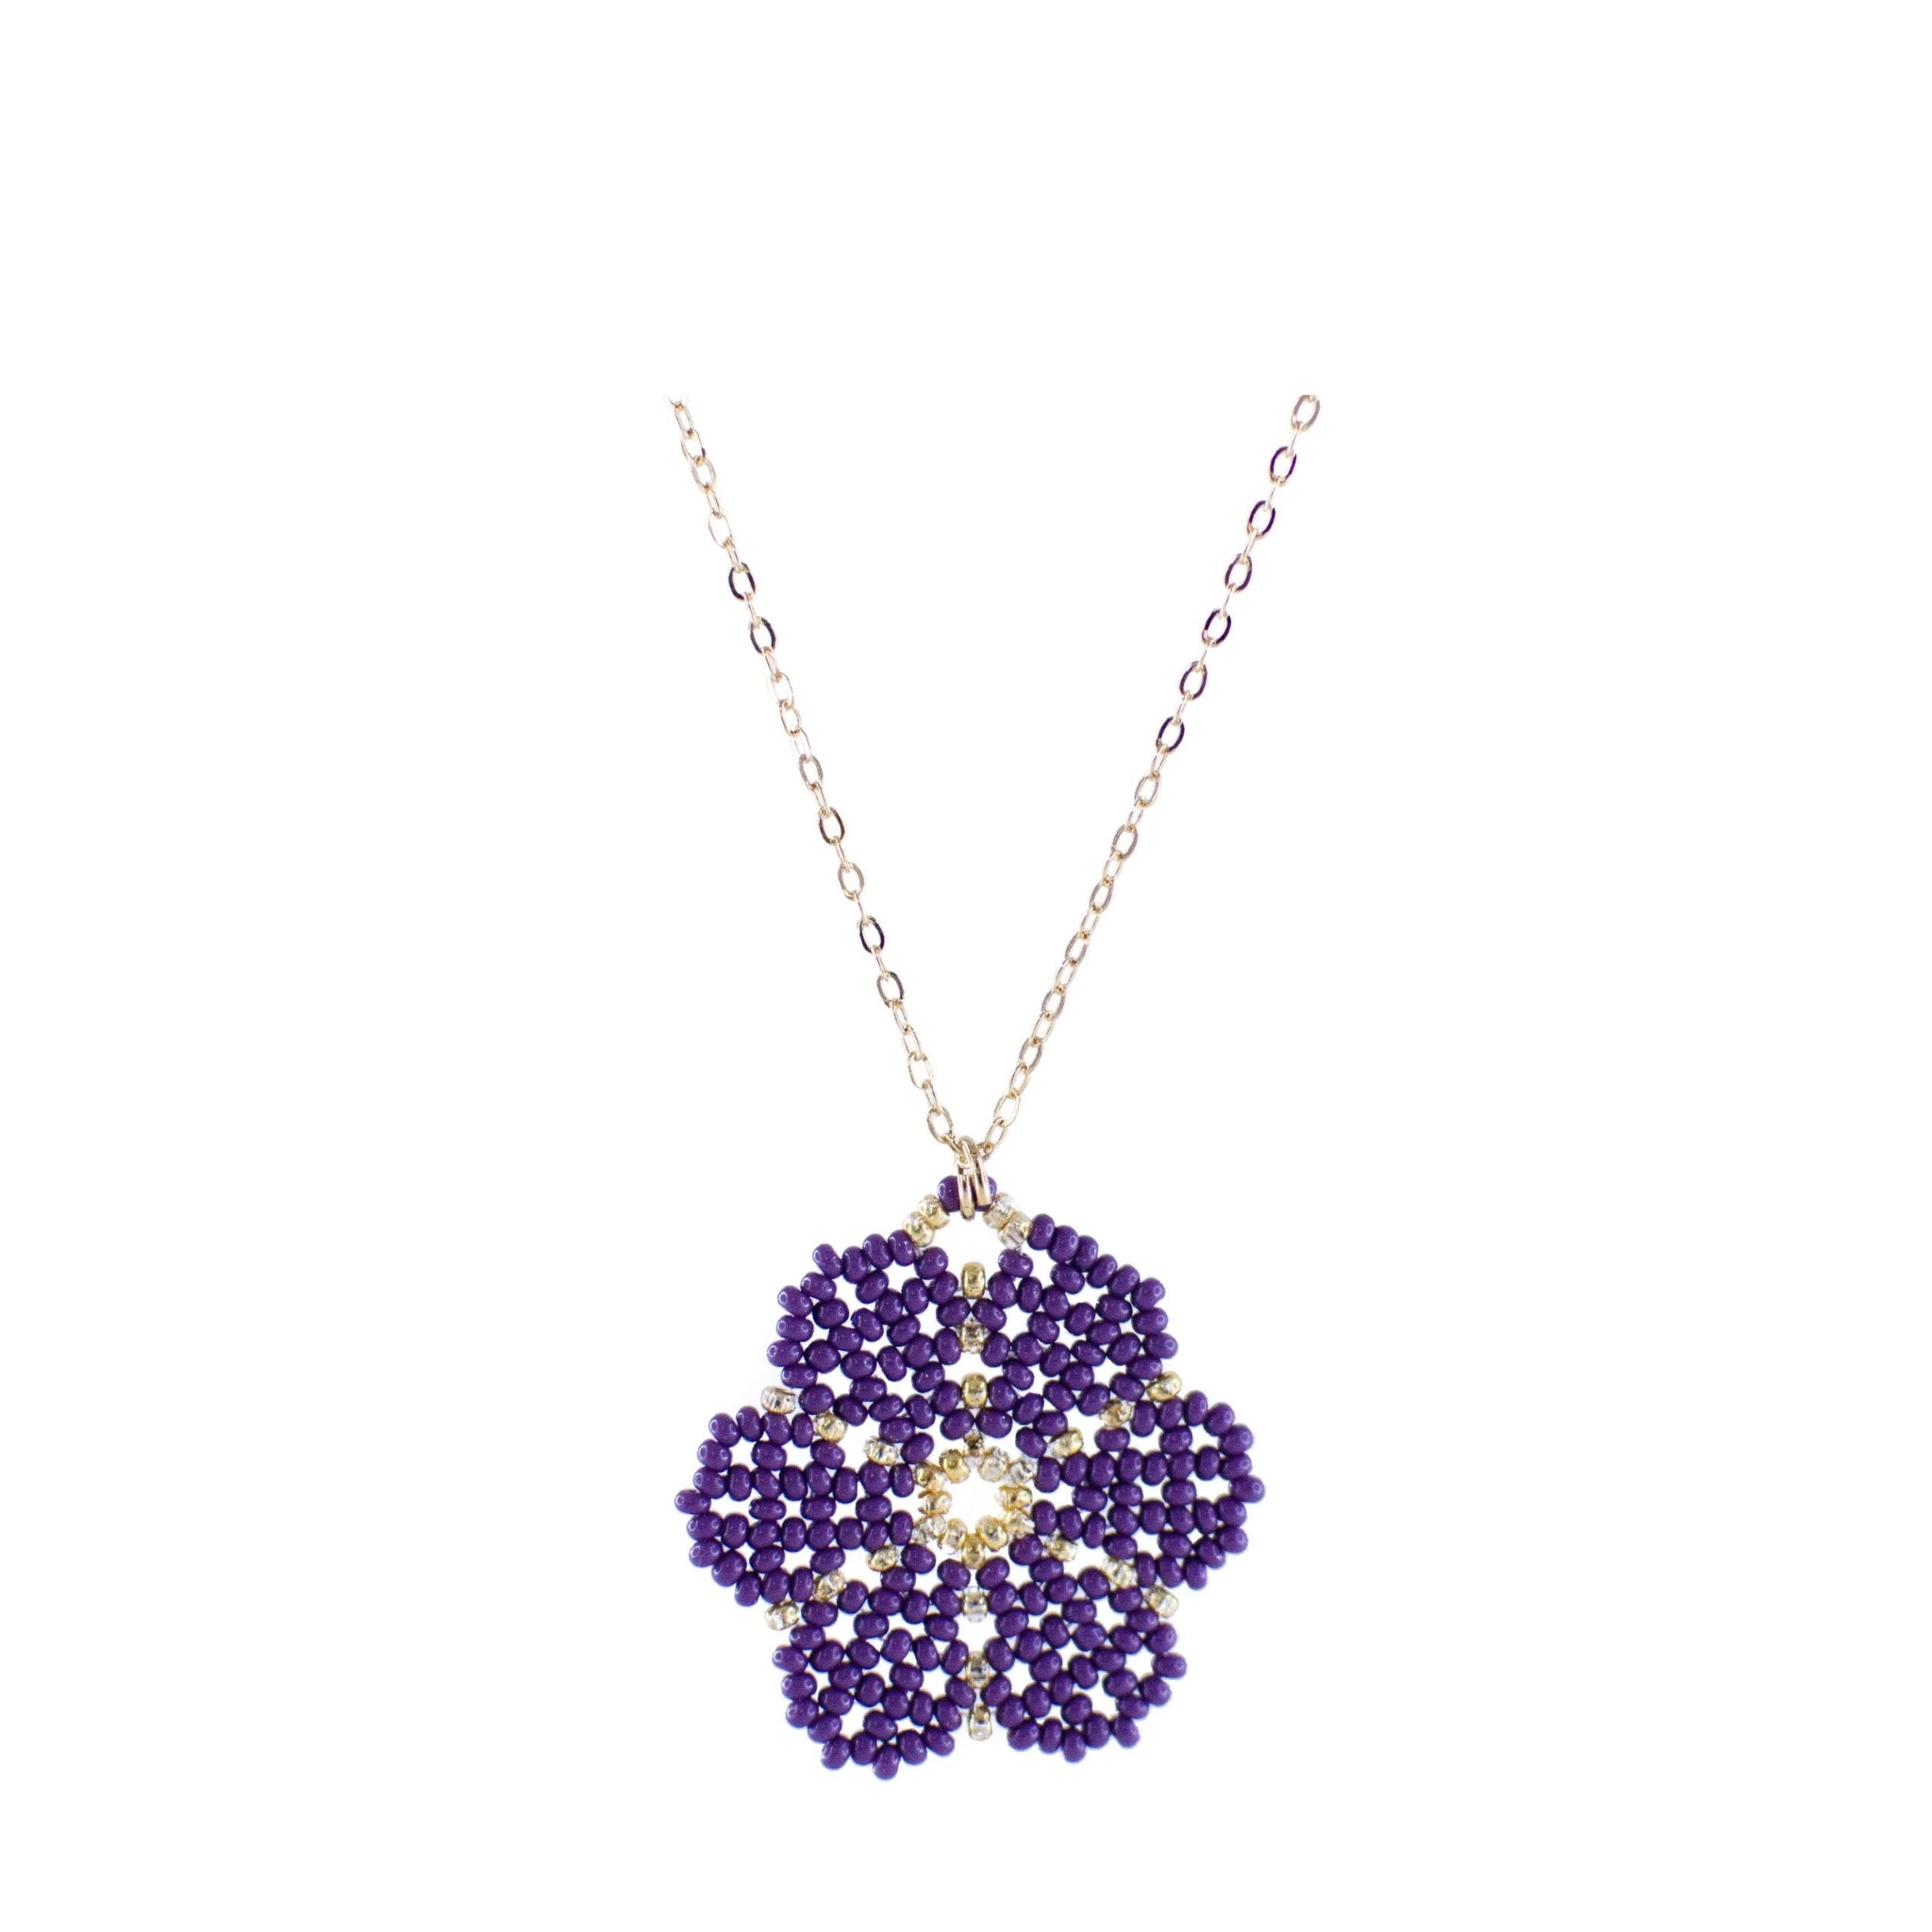 Huichol Flower Lavander with Gold Plated Chain 1